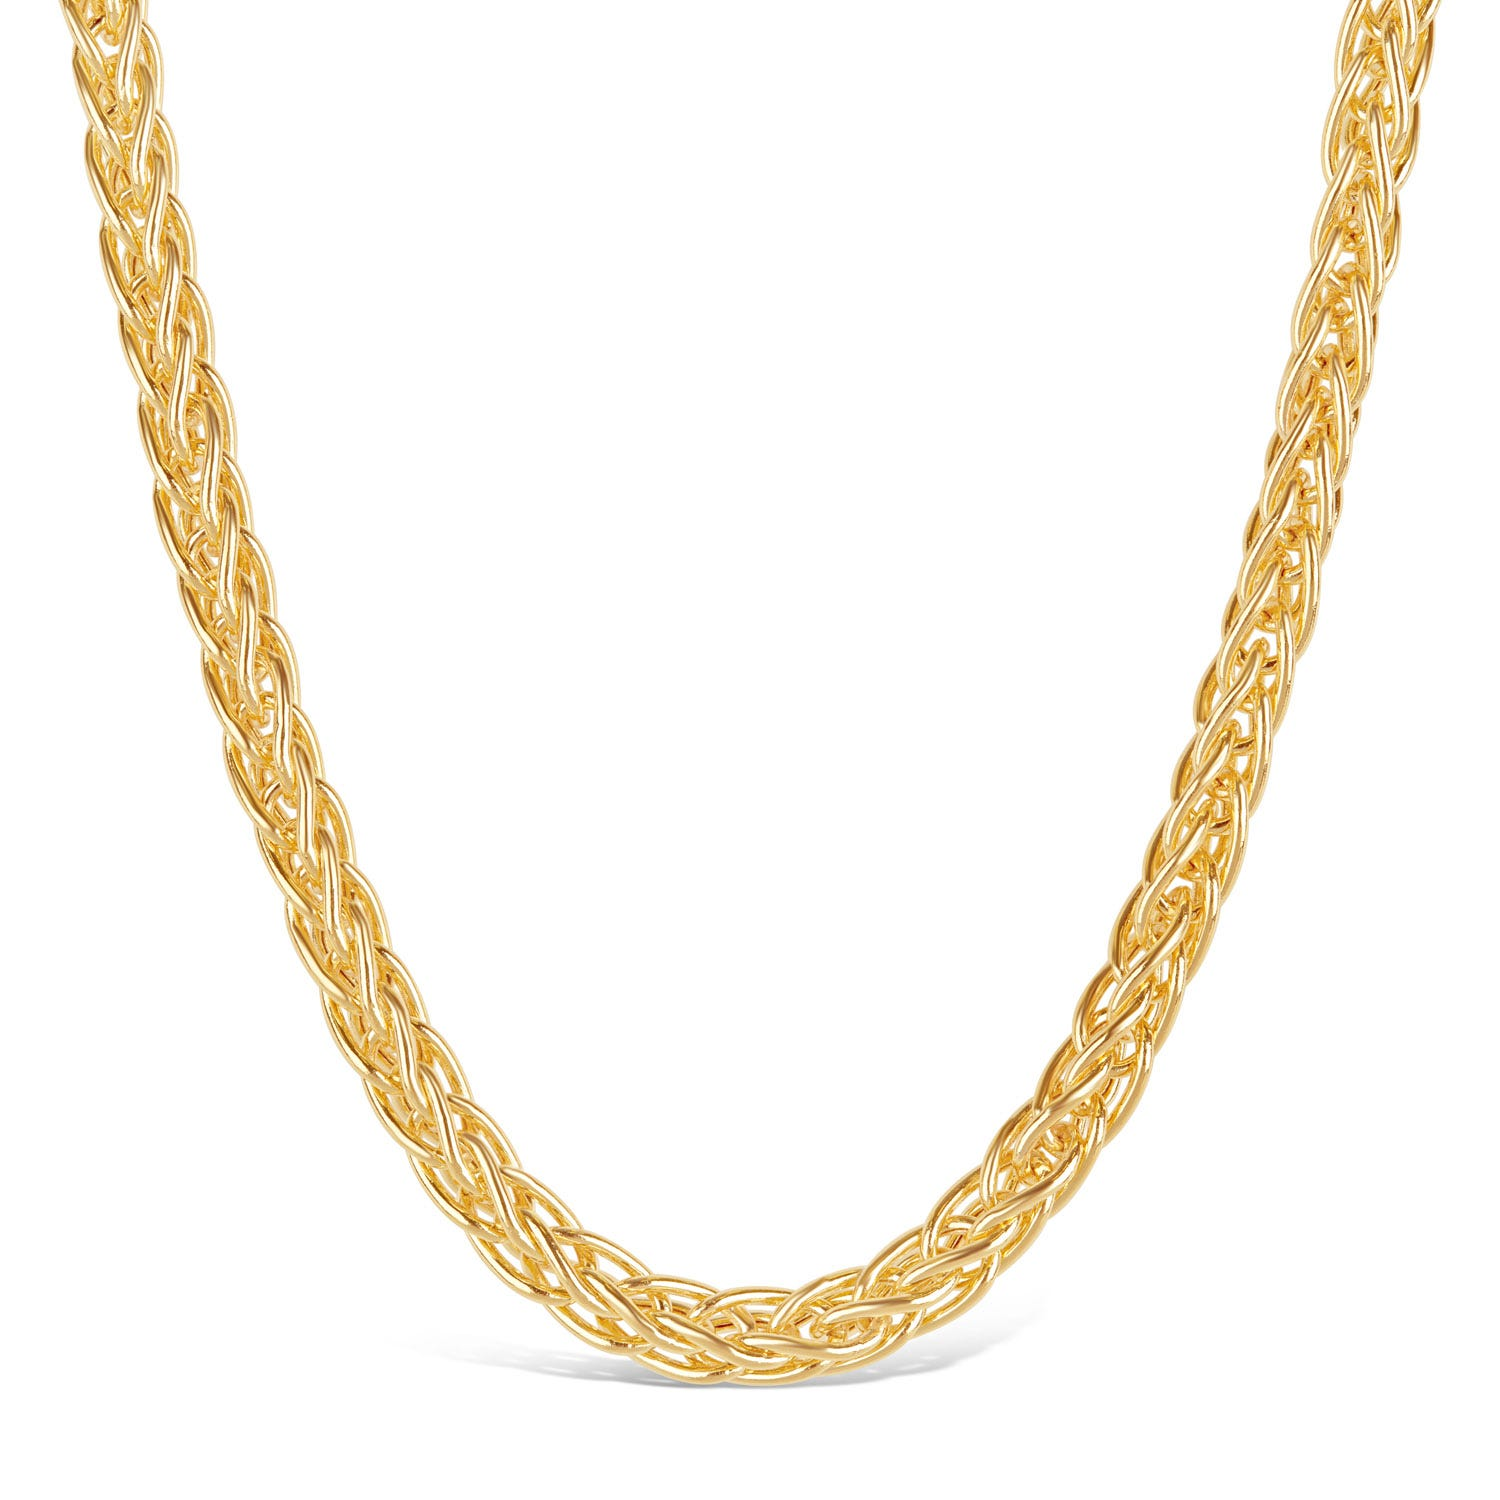 9ct Yellow Gold Spiga Chain Link Necklace